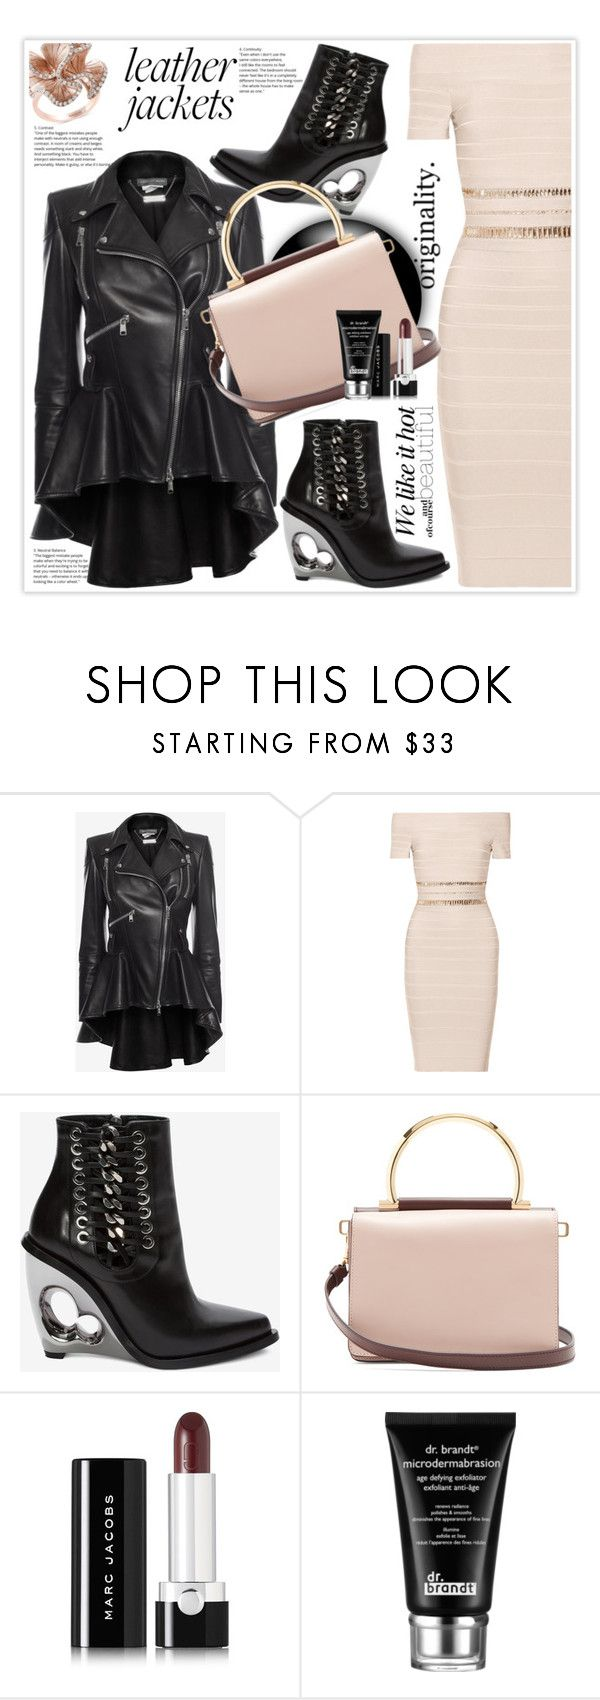 """""""CoolGirl Style Leather Jackets"""" by stranjakivana liked"""